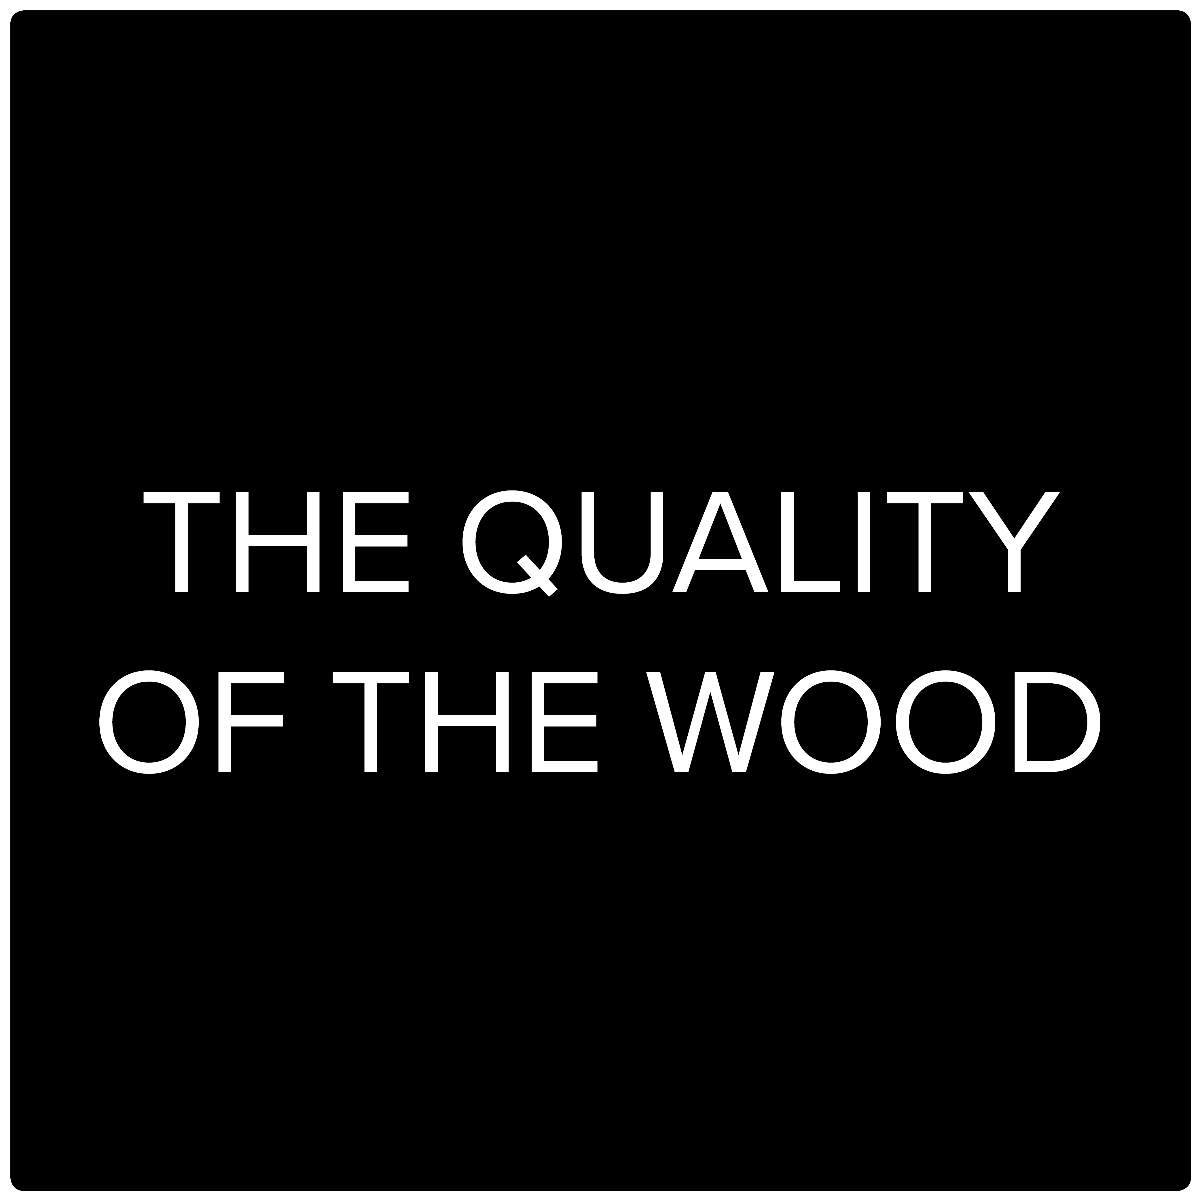 HWAM Video: The quality of the wood